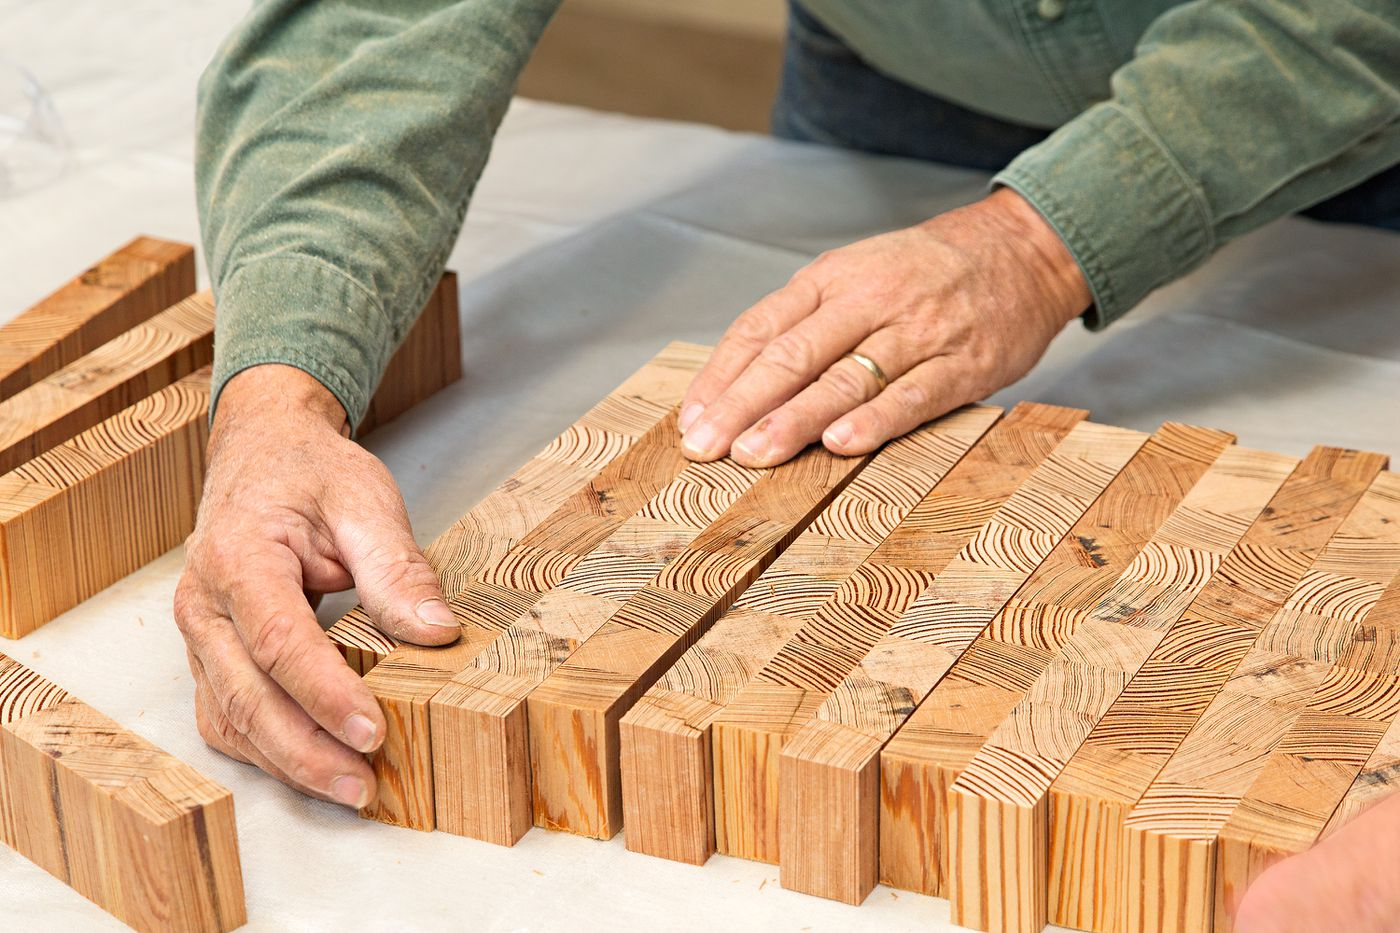 How To Make A Wood Cutting Board This Old House